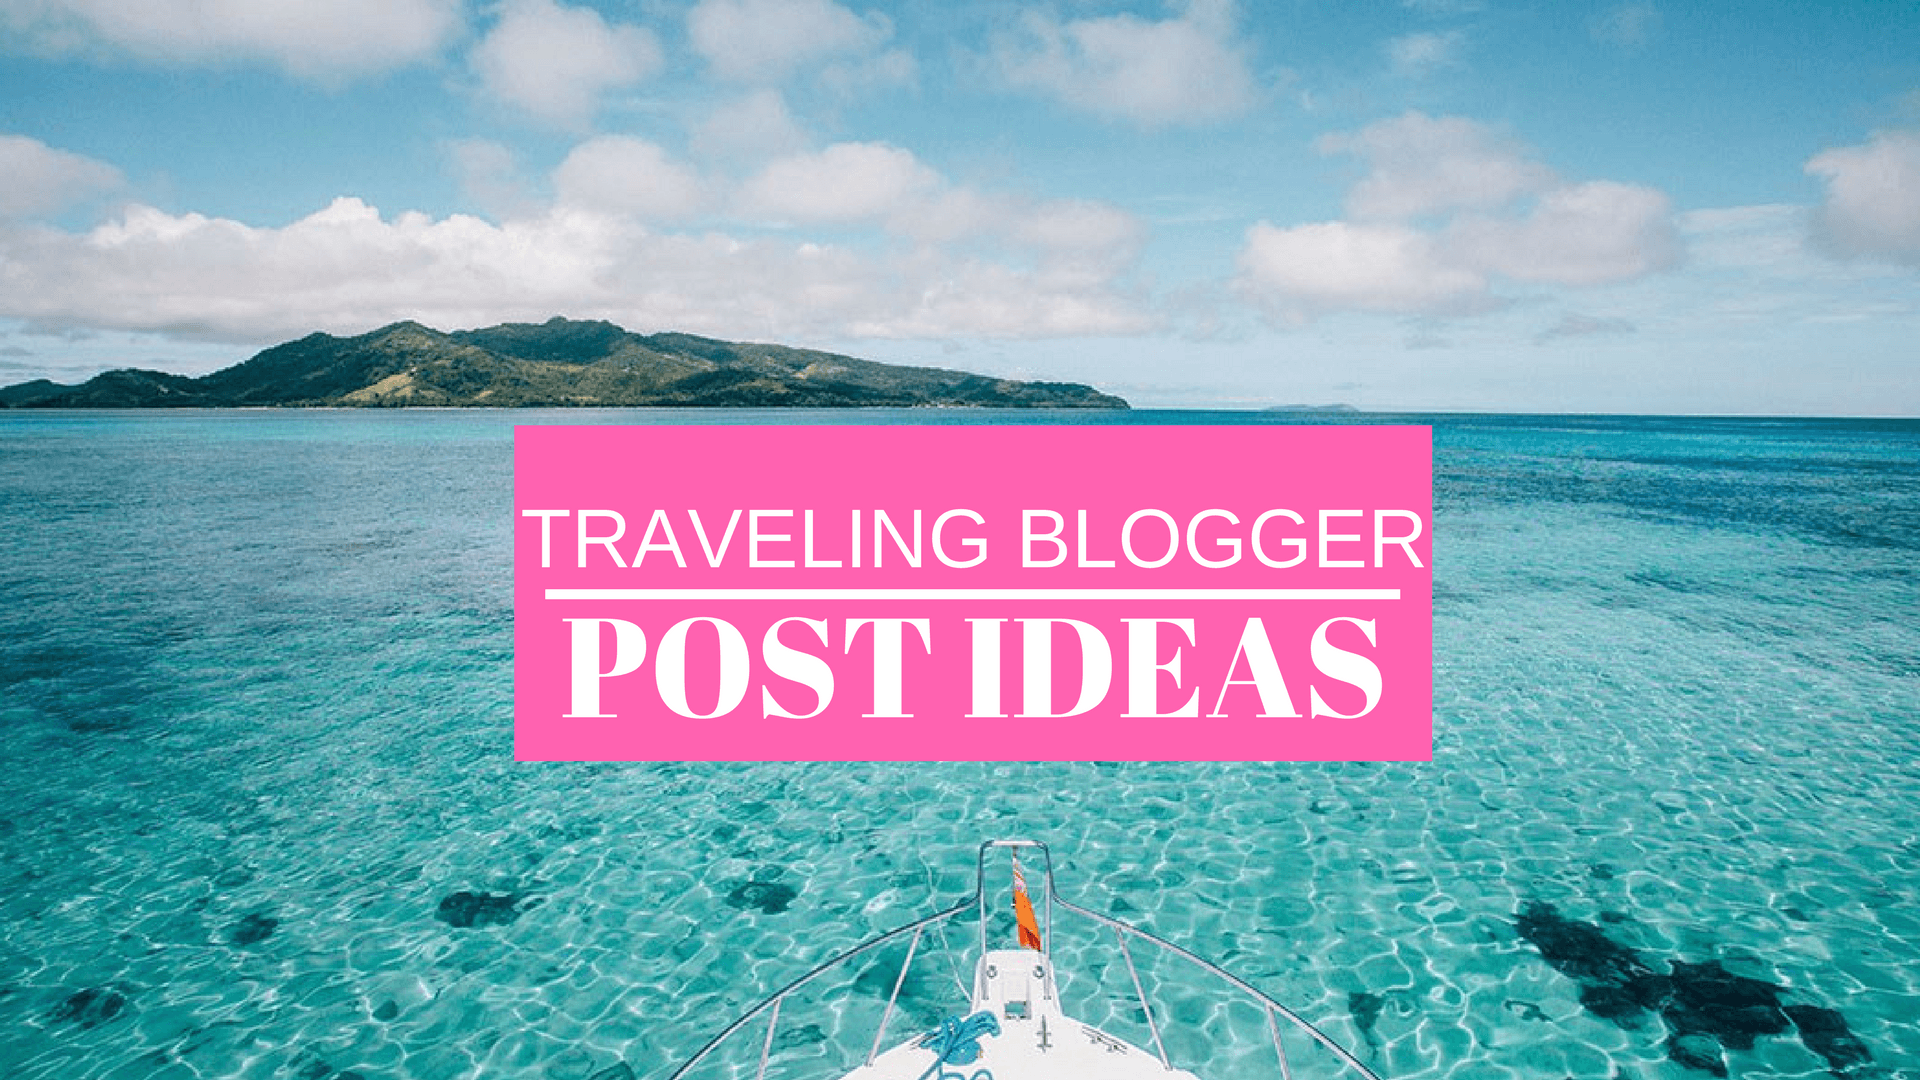 BLOG 101: TRAVELING BLOGGER POST IDEAS